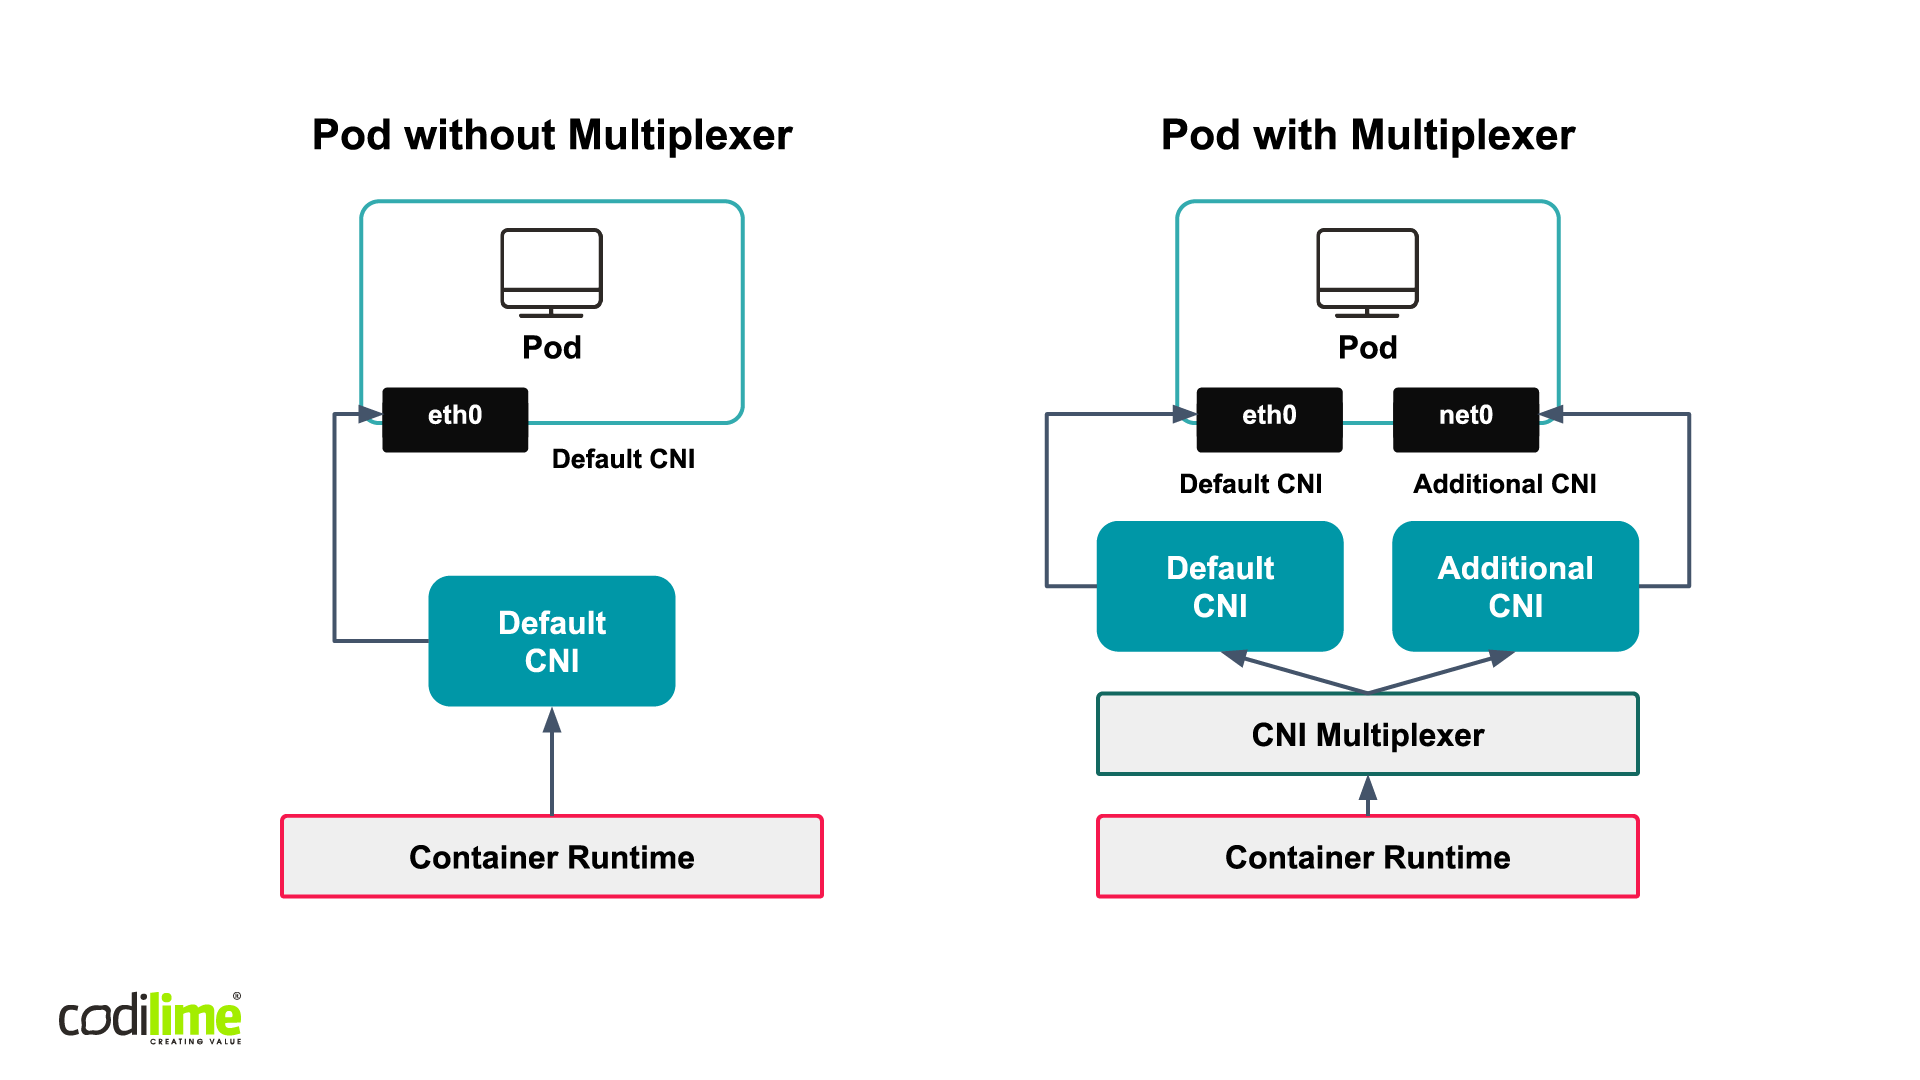 Pod with CNI multiplexer